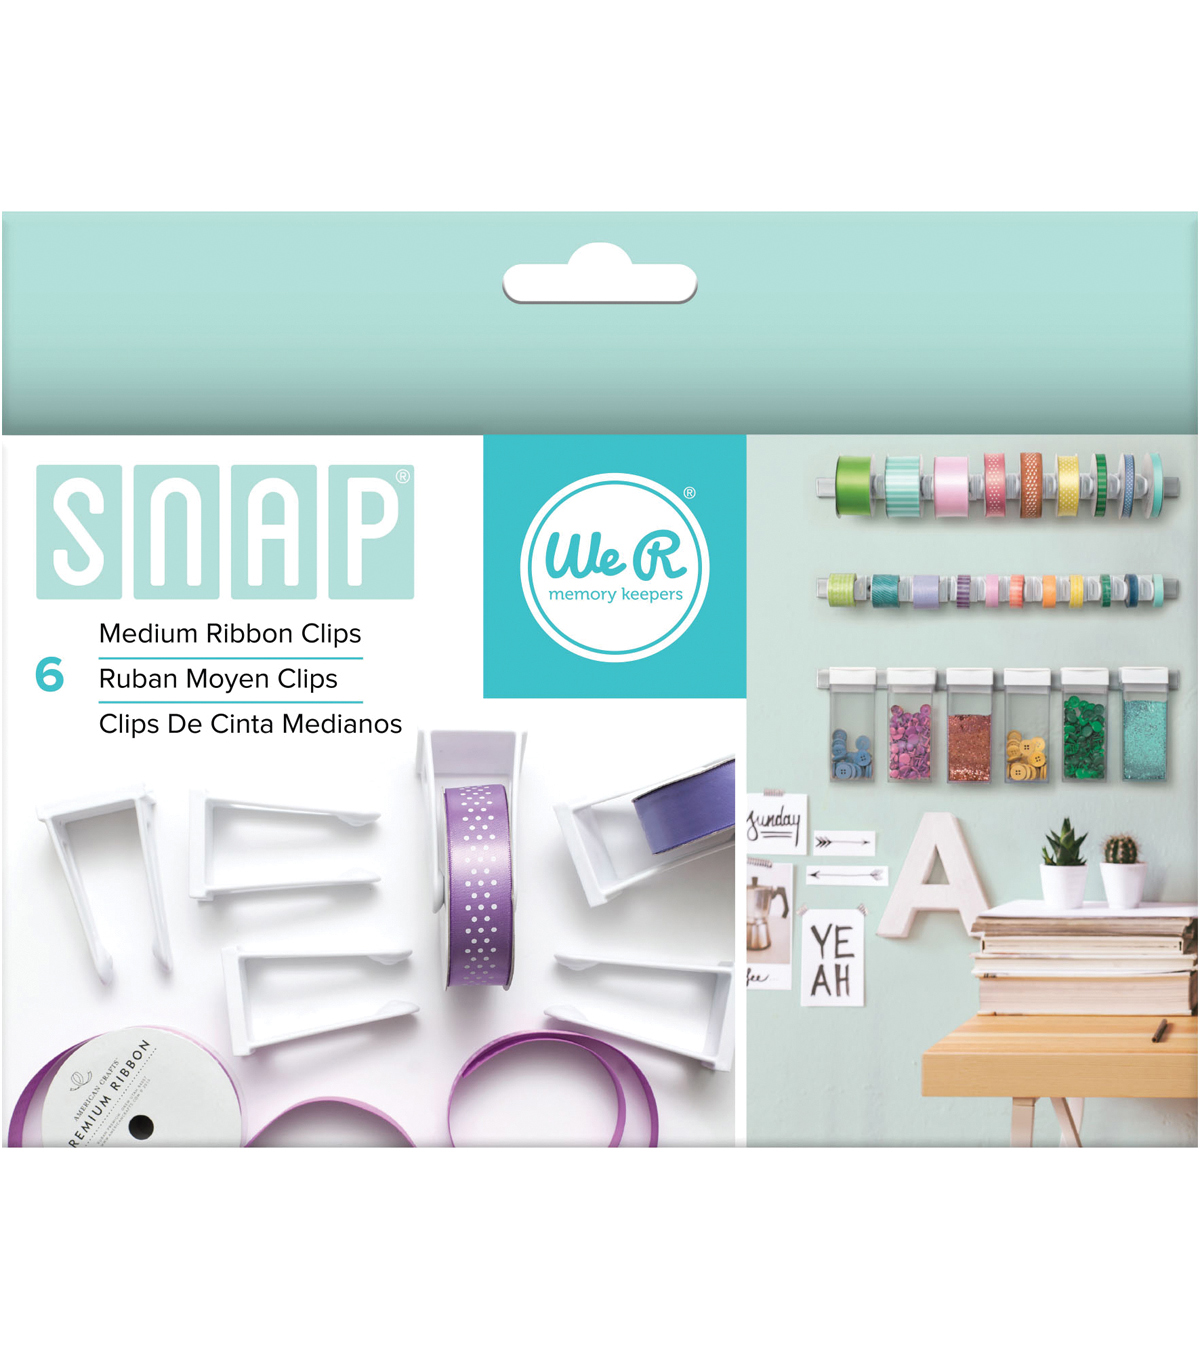 We R Memory Keepers™ Snap Storage 6ct Medium Ribbon Clips